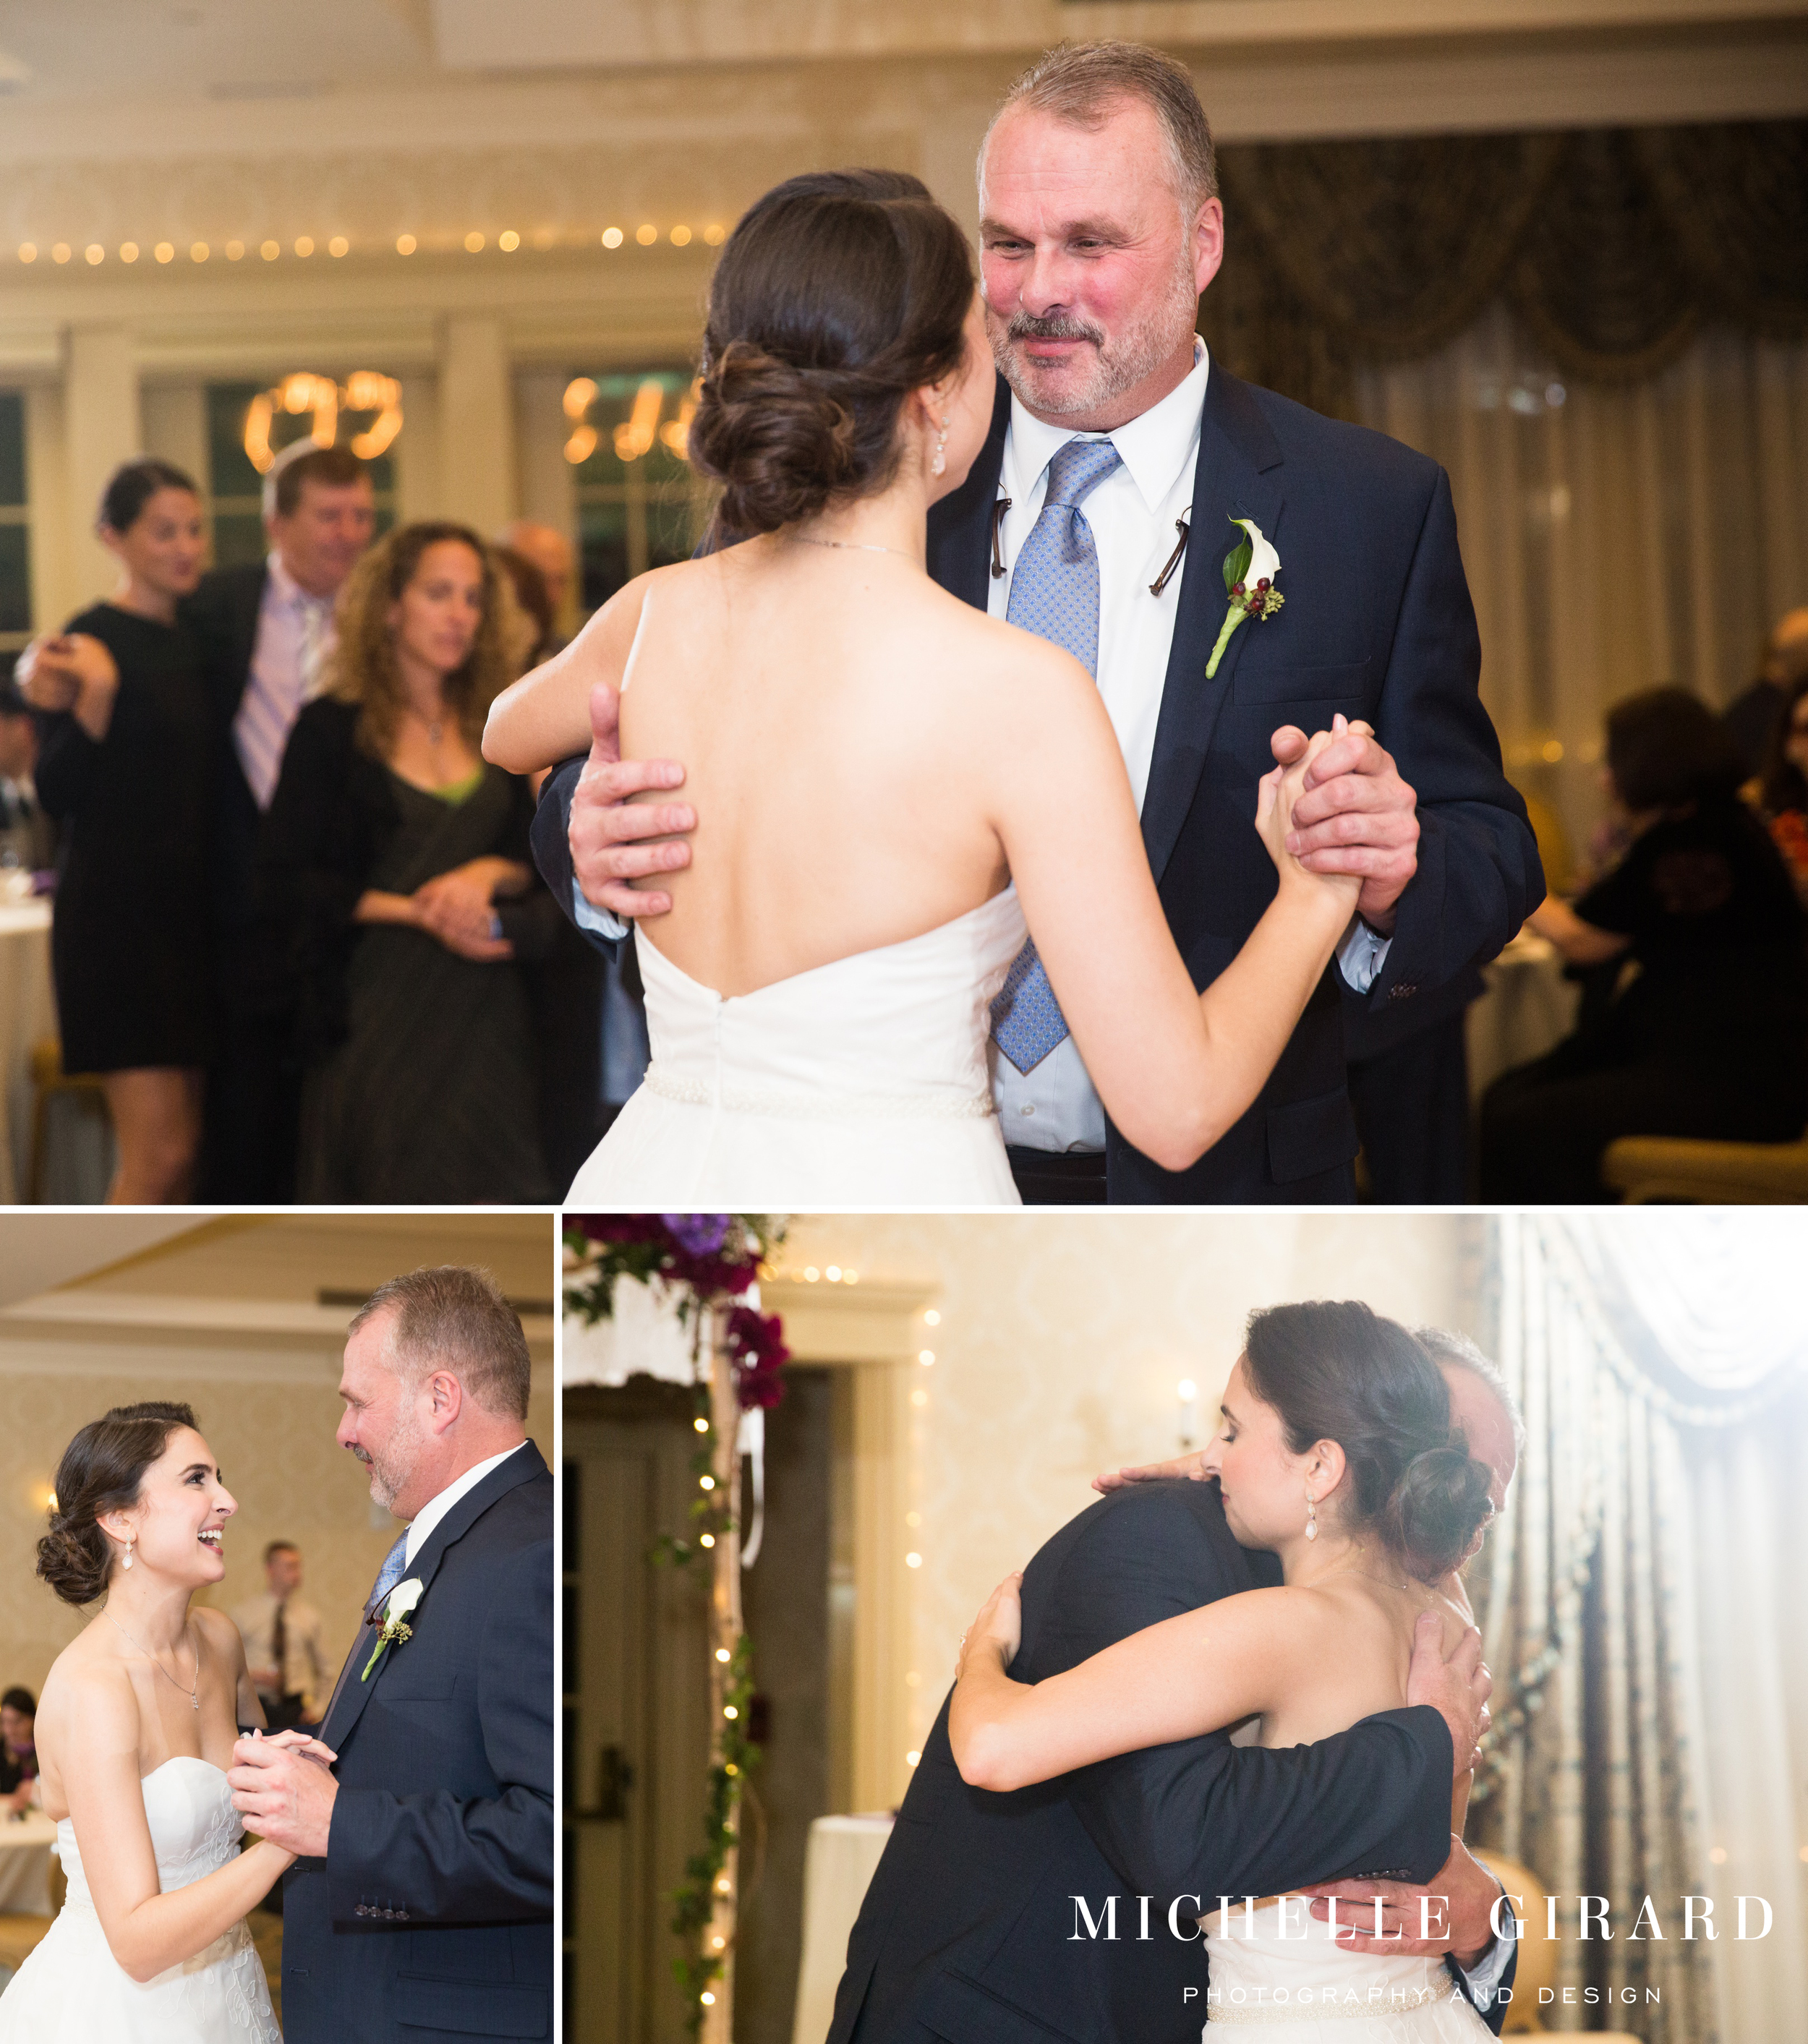 LordJefferyInnWedding_AmherstMa_MichelleGirardPhotography48.jpg